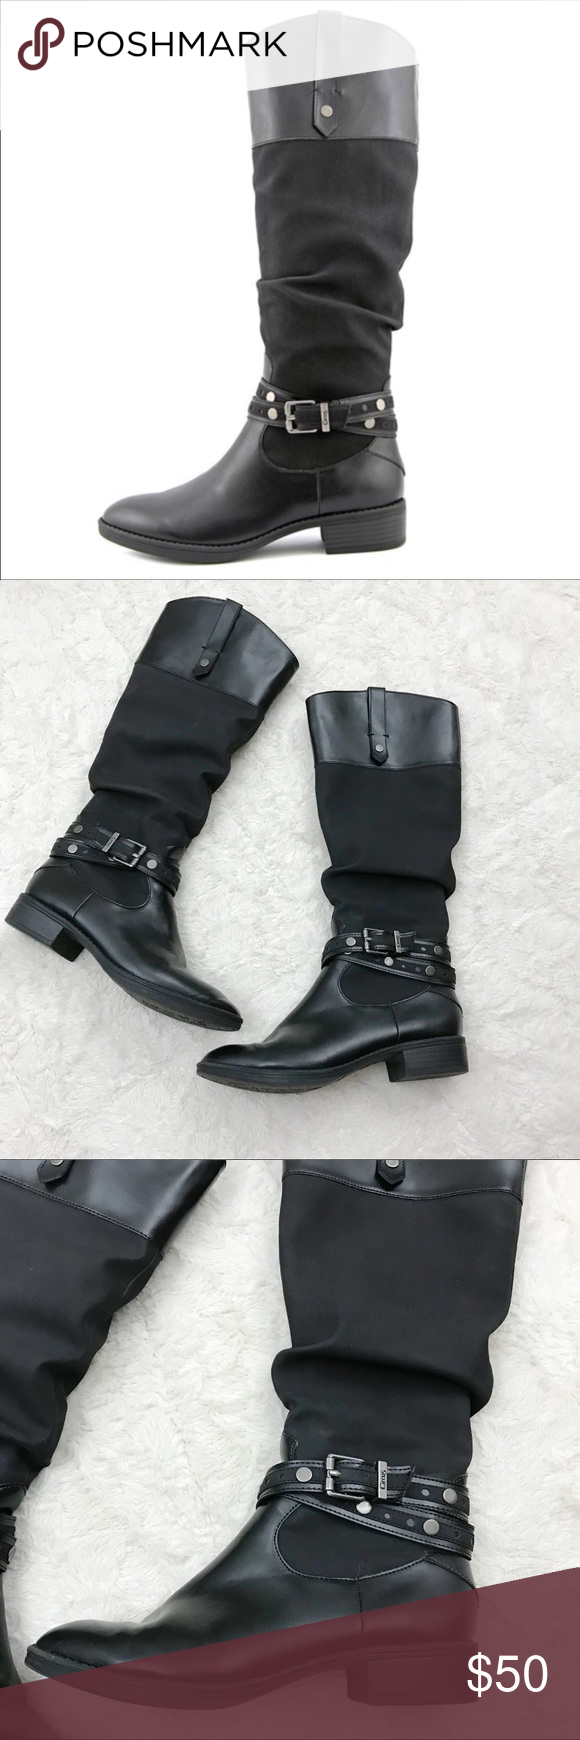 c1a0cff67bcdc Circus By Sam Edelman Paxton Boots Circus by Sam Edelman Paxton boots in  great condition other than a scratch on the toe. Circus by Sam Edelman  Shoes Heeled ...